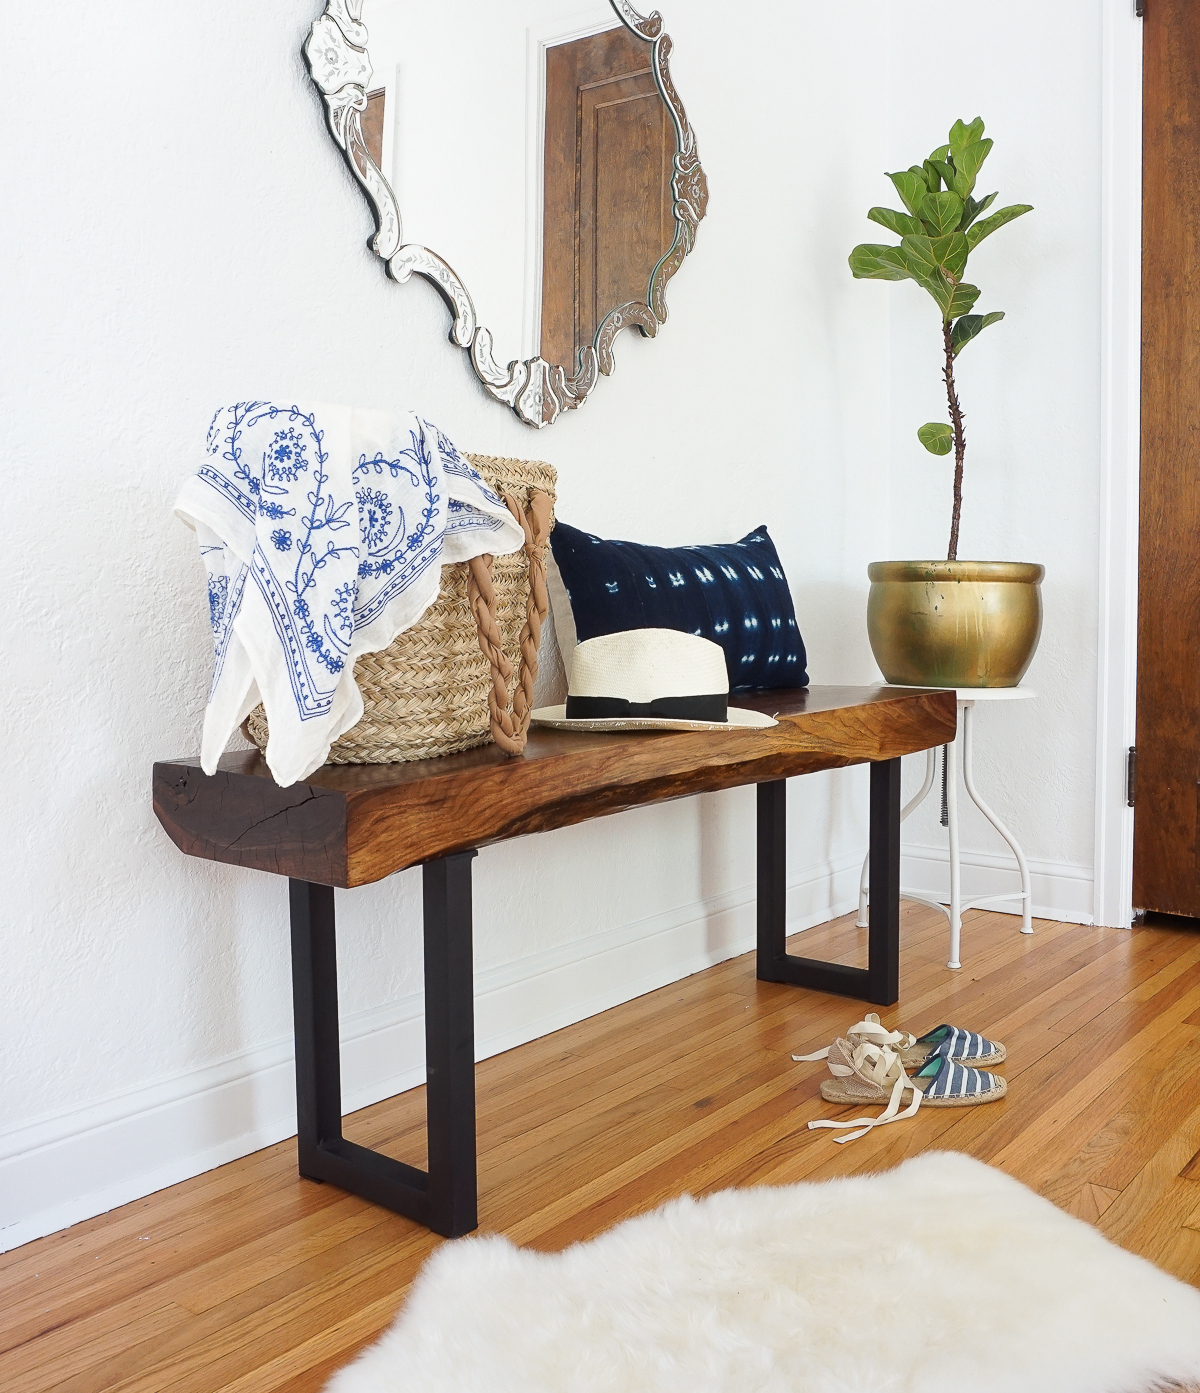 Hereu0027s The Skinny On Le Bench: